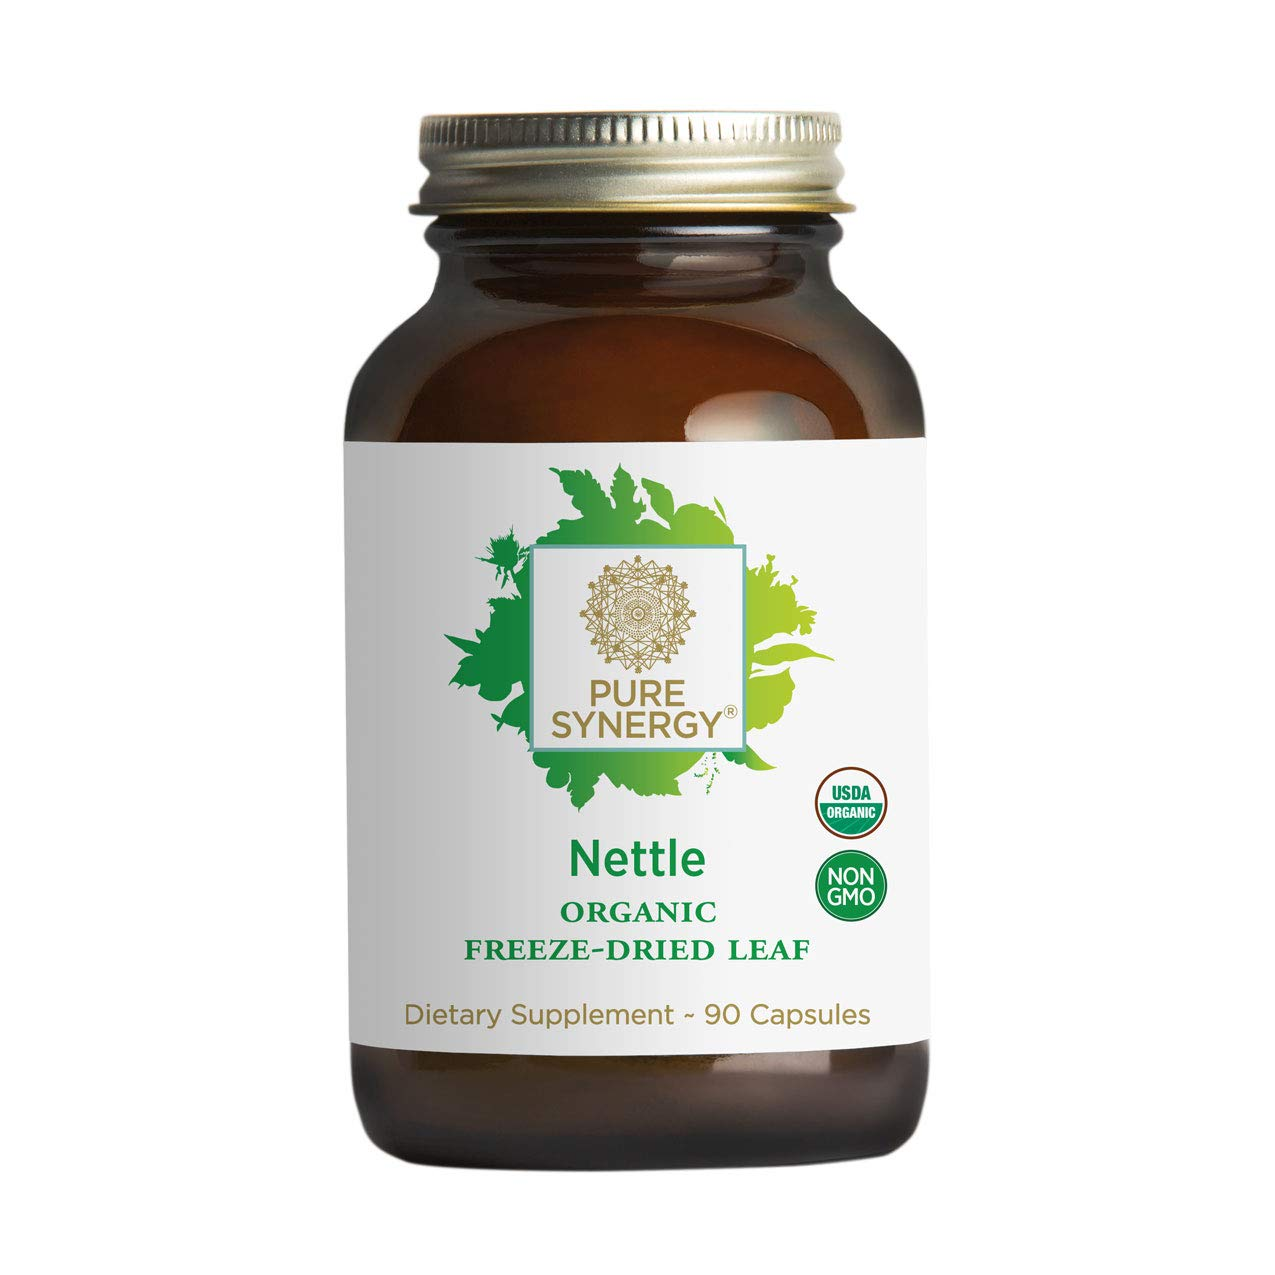 Pure Synergy USDA Organic Freeze-Dried Nettle Leaf (90 Capsules) Supports Healthy Histamine Levels During Allergy Season by Pure Synergy